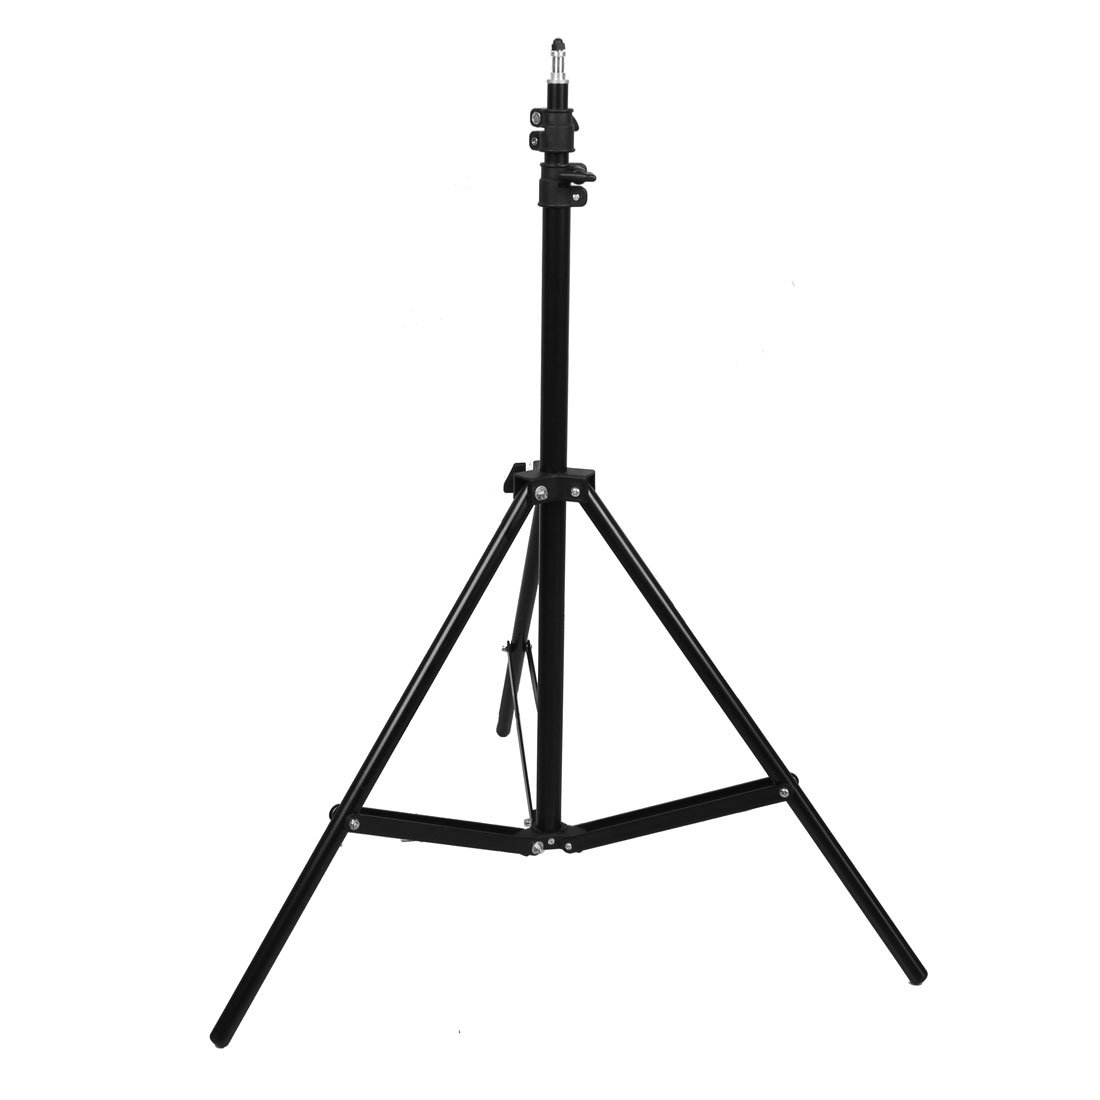 190cm Max. Height Telescoping 3 Sections Photo Studio Tripod Light Stand Black